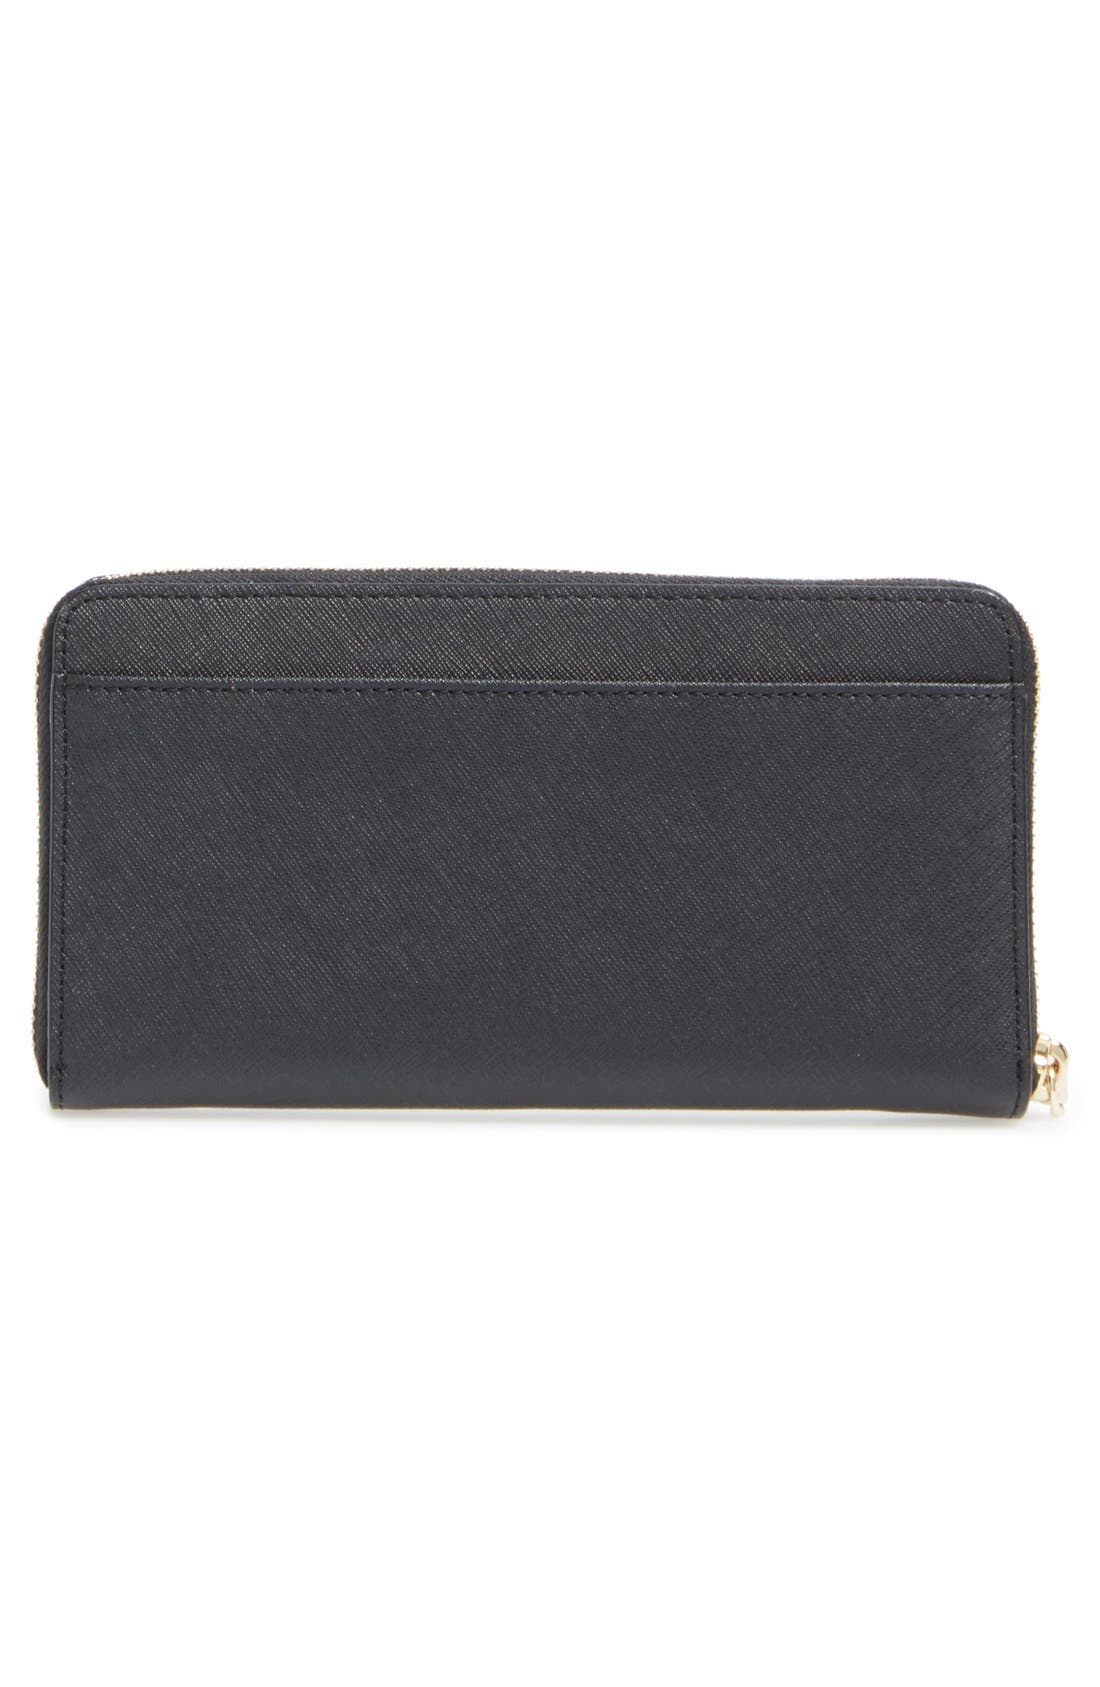 'cameron street - lacey' leather wallet,                             Alternate thumbnail 70, color,